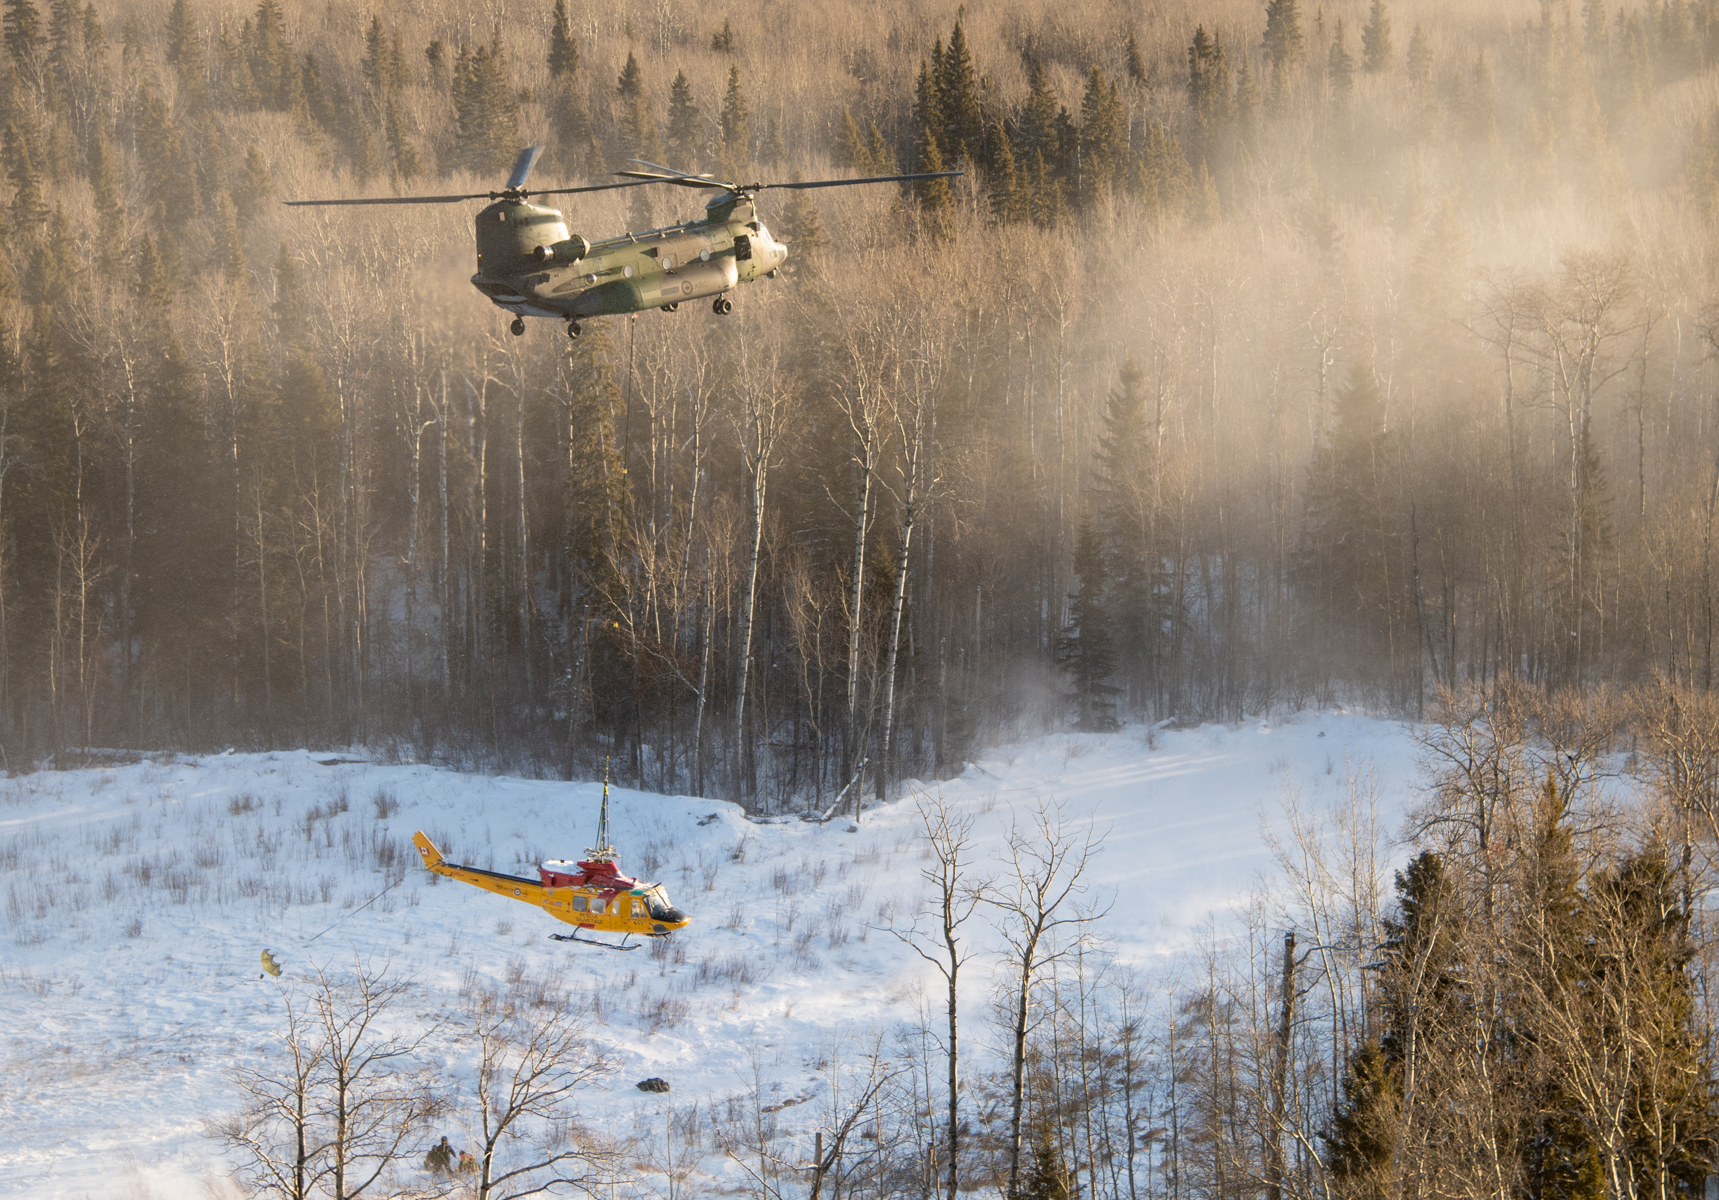 The Chinook helicopter lifts off with the Griffon slung below it. Note that the Griffon is not yet aligned with the Chinook and the drogue chute has not fully filled with air to steady the smaller helicopter. PHOTO: Master Corporal Amy Martin, AE05-2019-0007-039